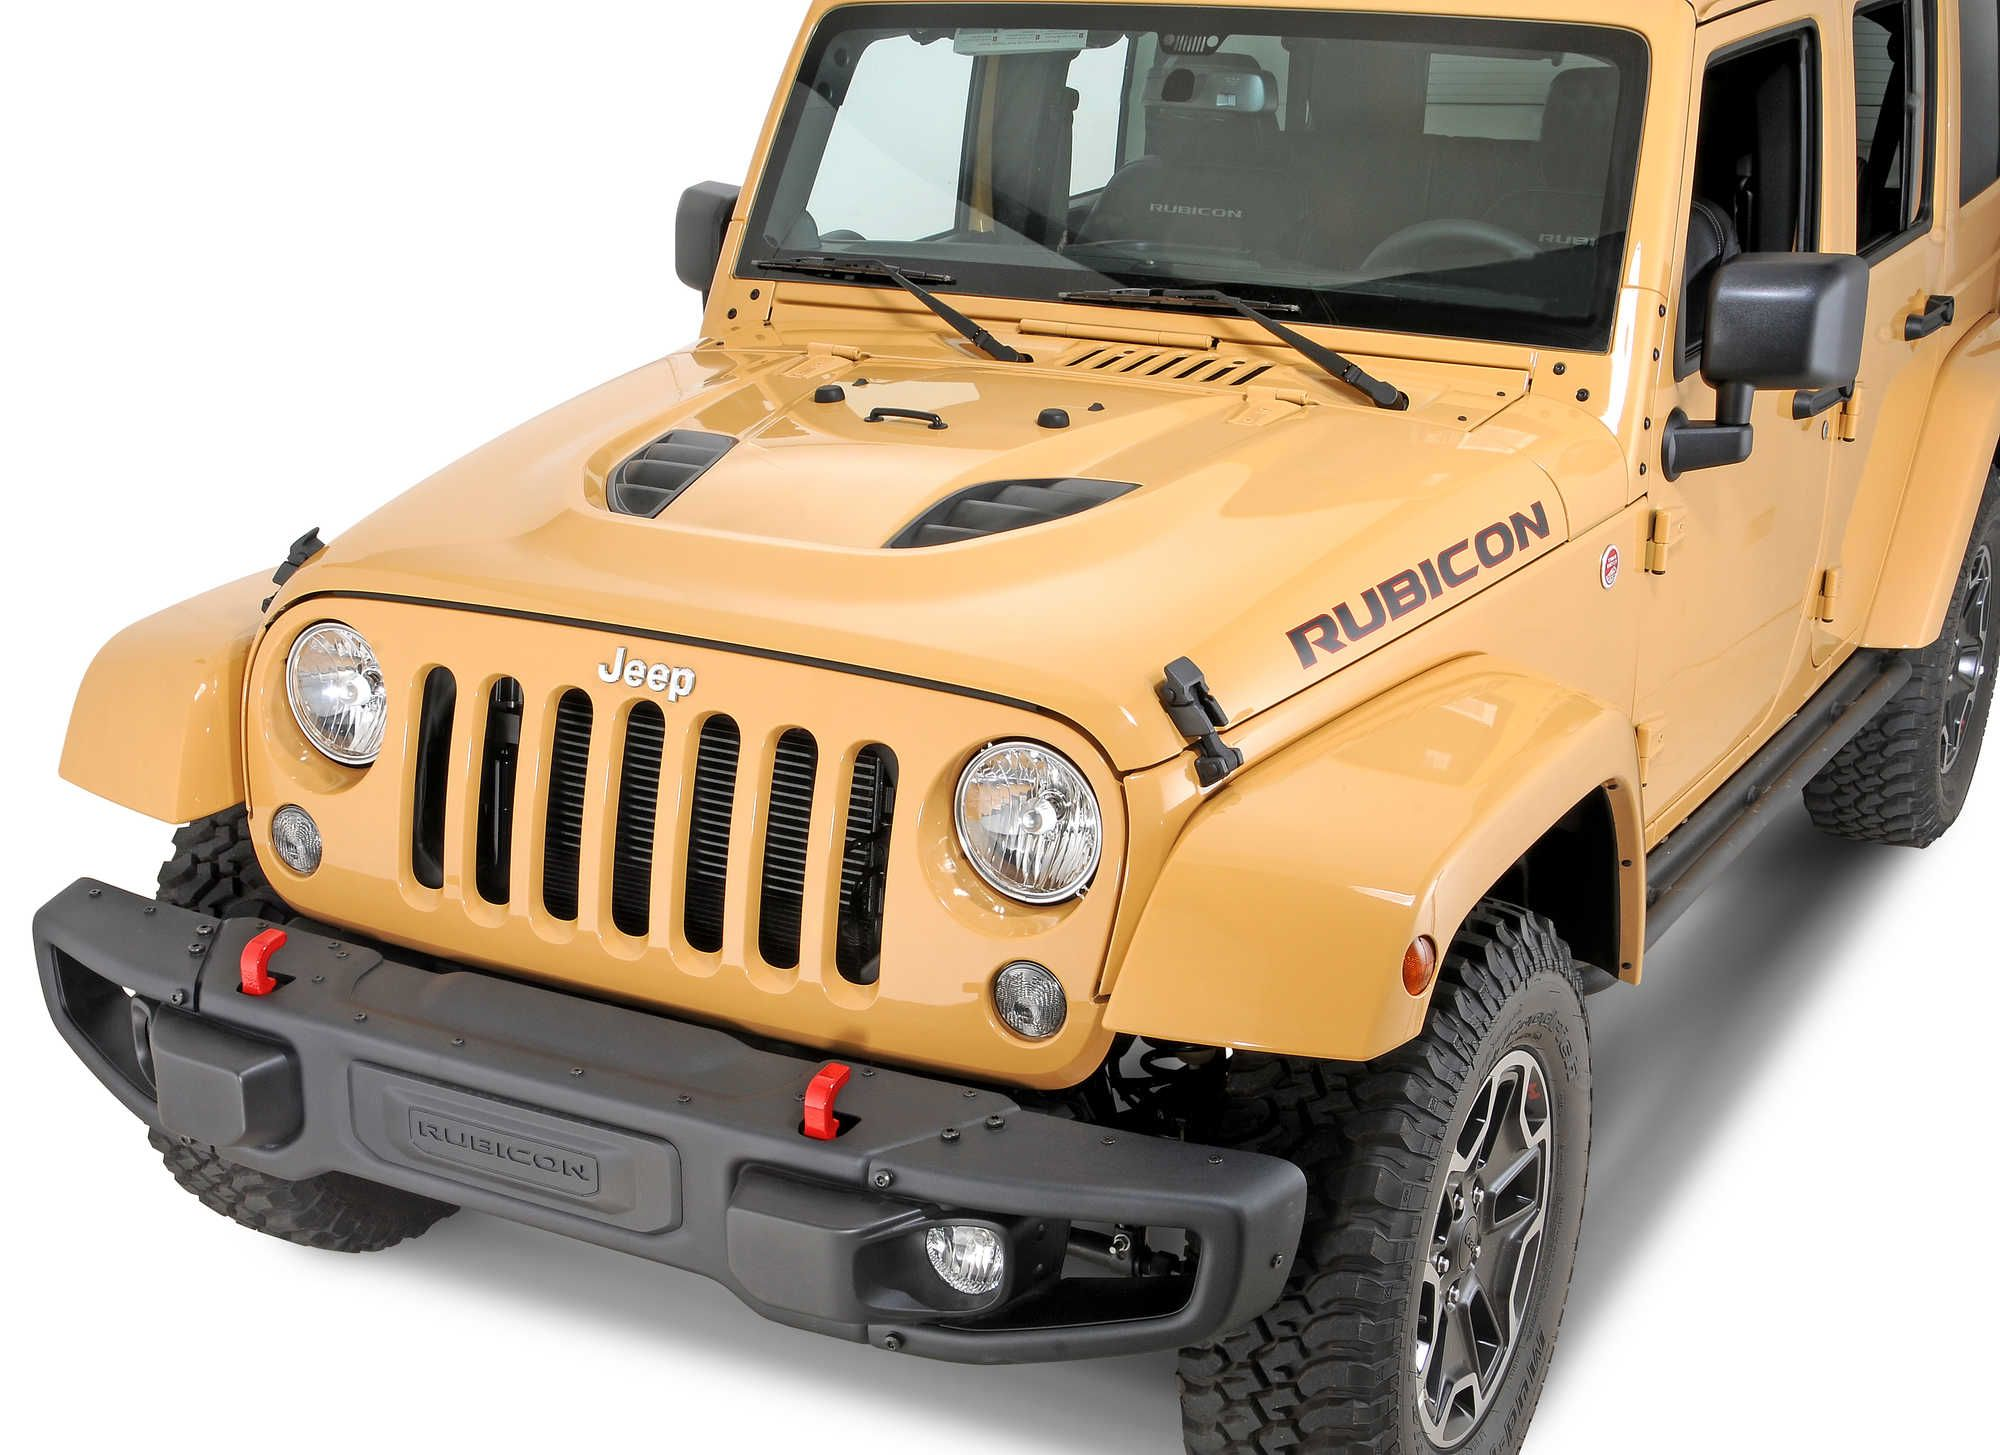 0d47b3689a855c7d38b2ef3dd7b40c87 Take A Look About Jeep Dog Accessories with Captivating Gallery Cars Review